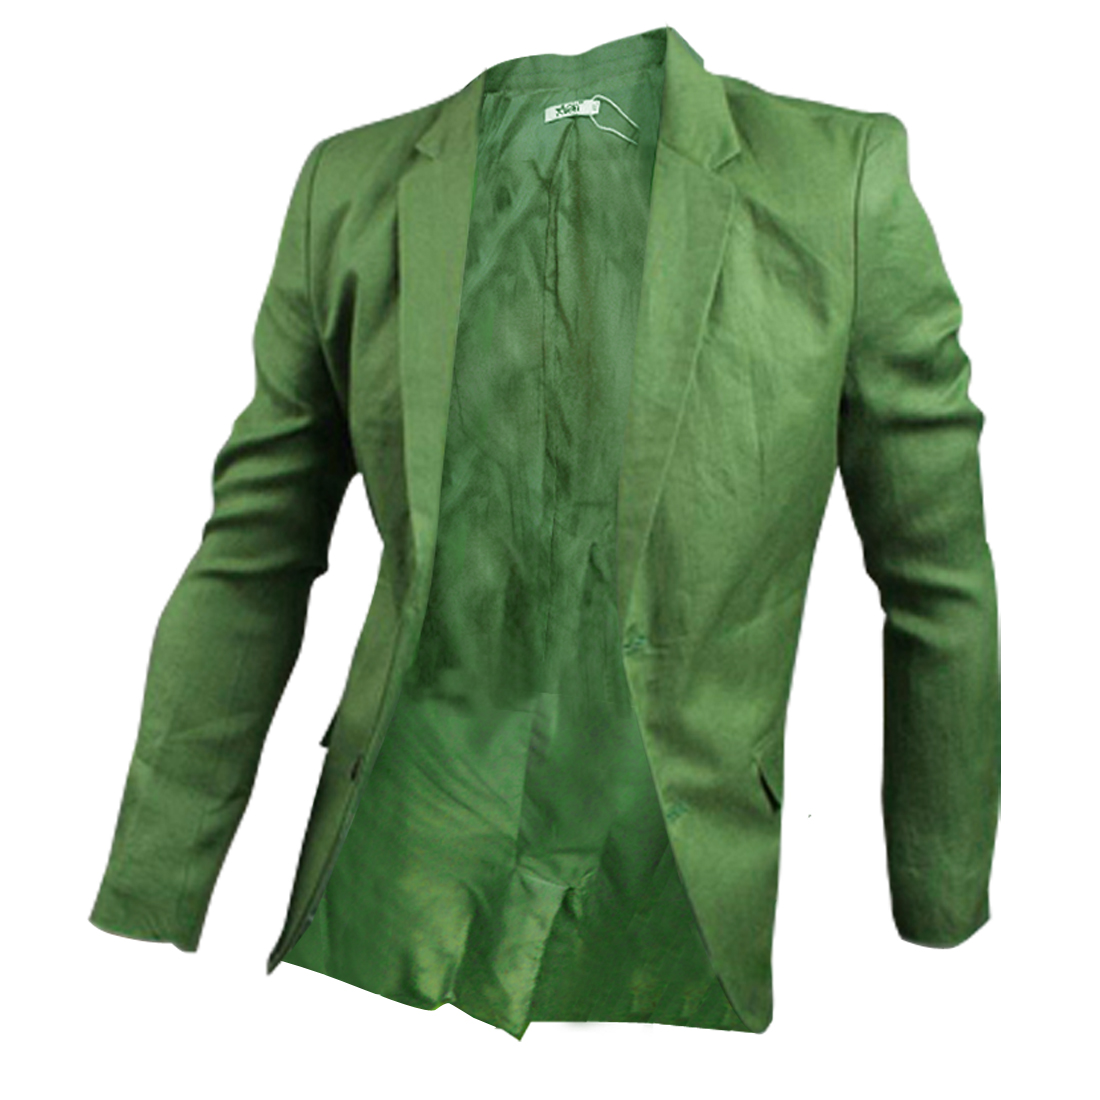 Man Stylish Pure Green Color Notched Lapel Two-Button Closure Blazer M